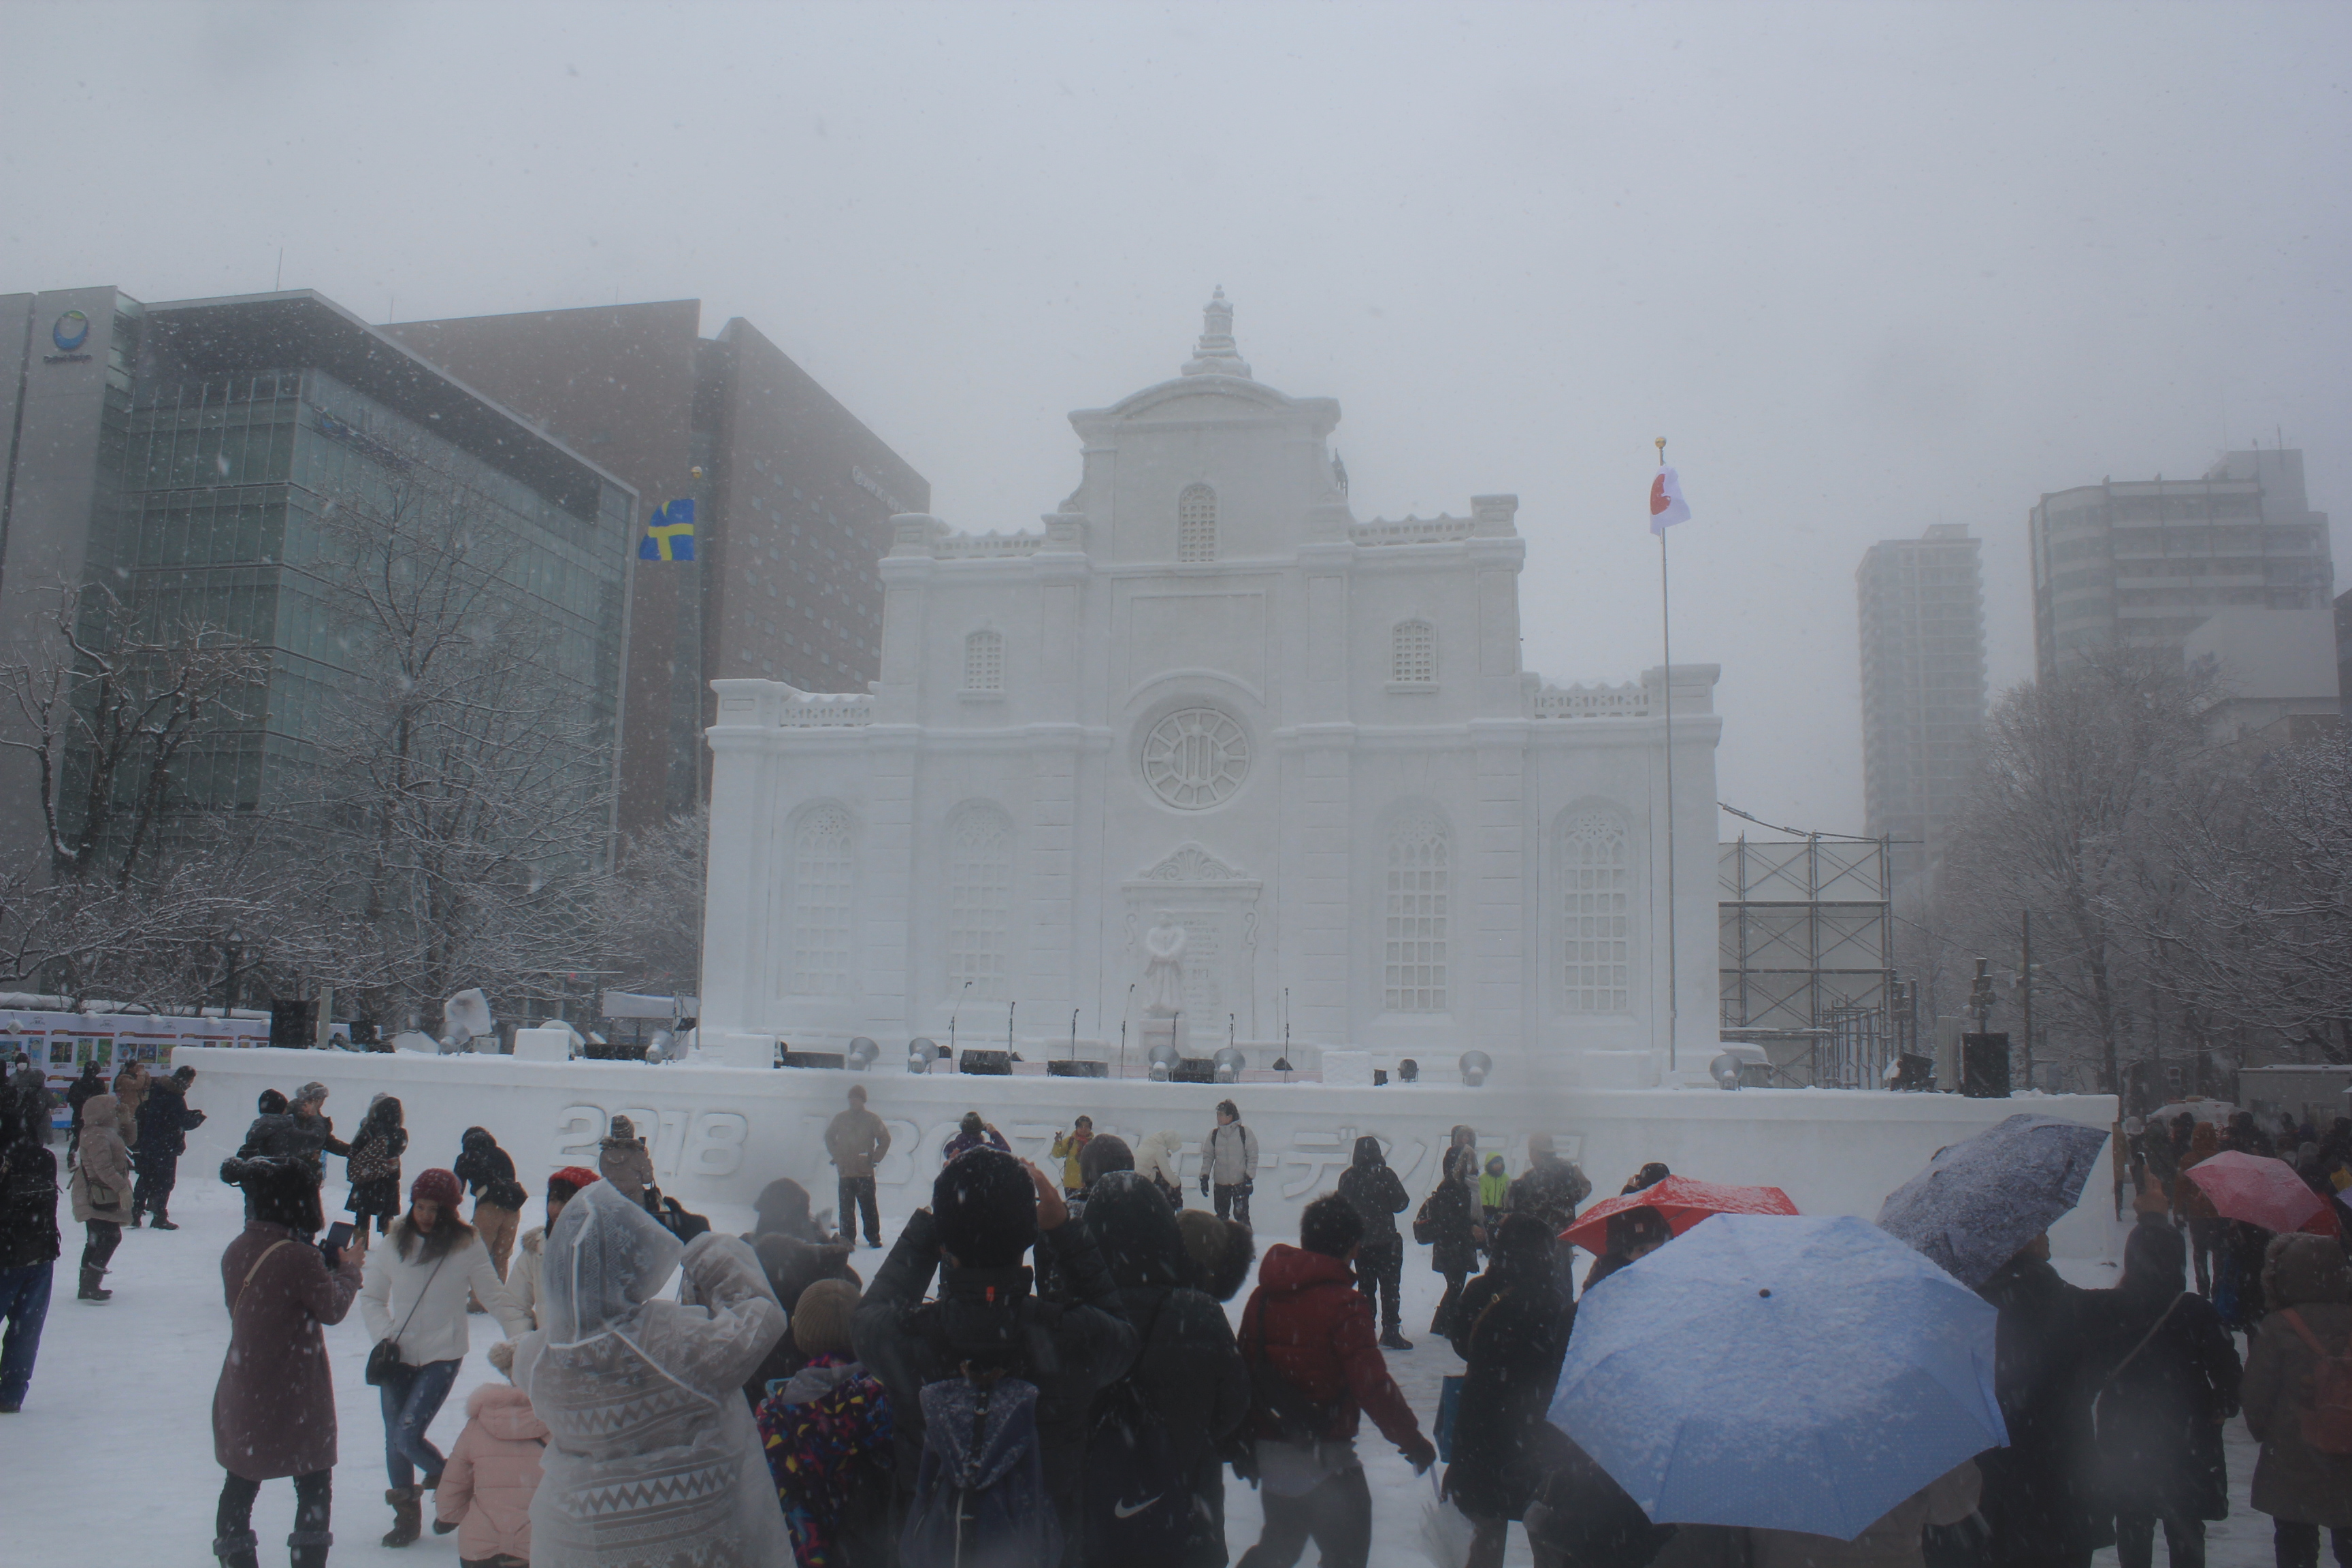 A snow sculpture of a palace at Sapporo Snow Festival with people satnding in front of it